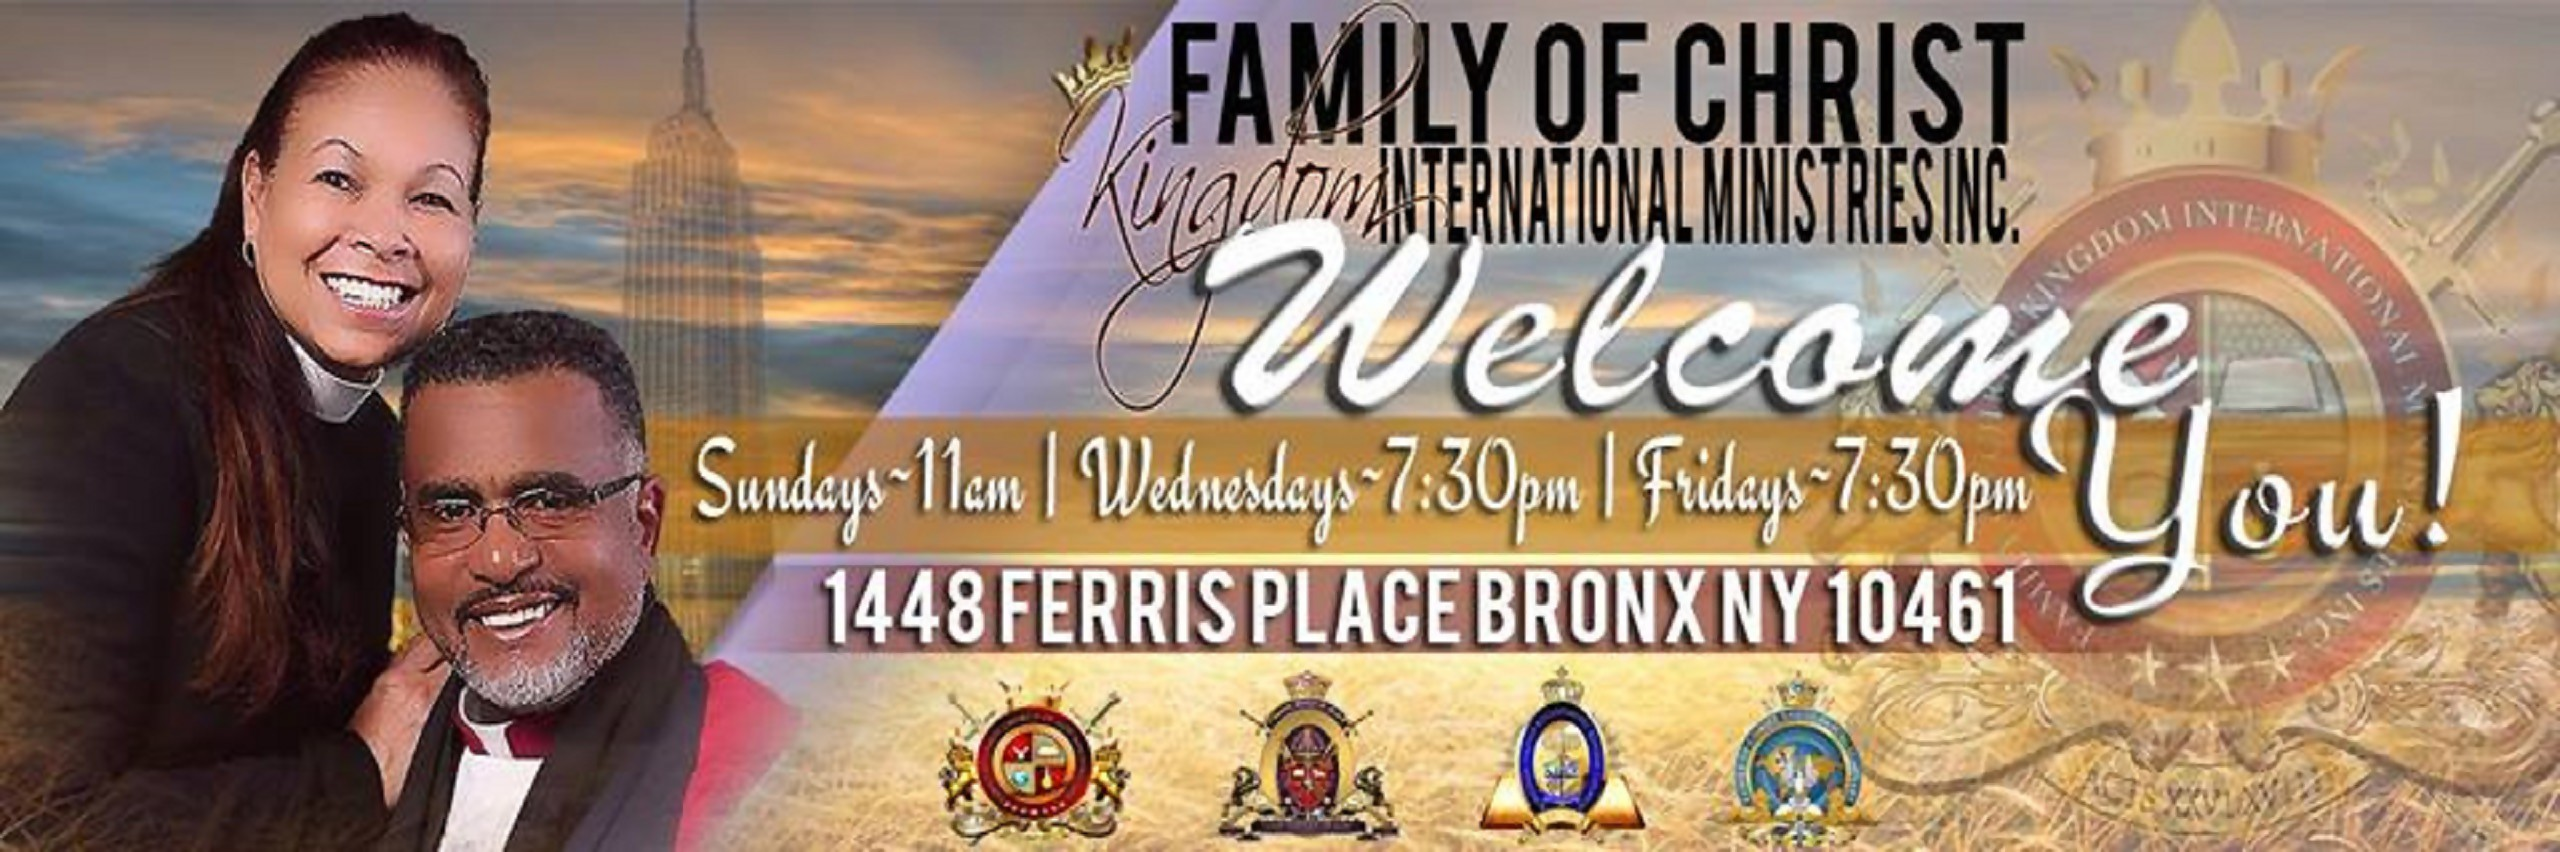 Family Of Christ Kingdom Sunday Services